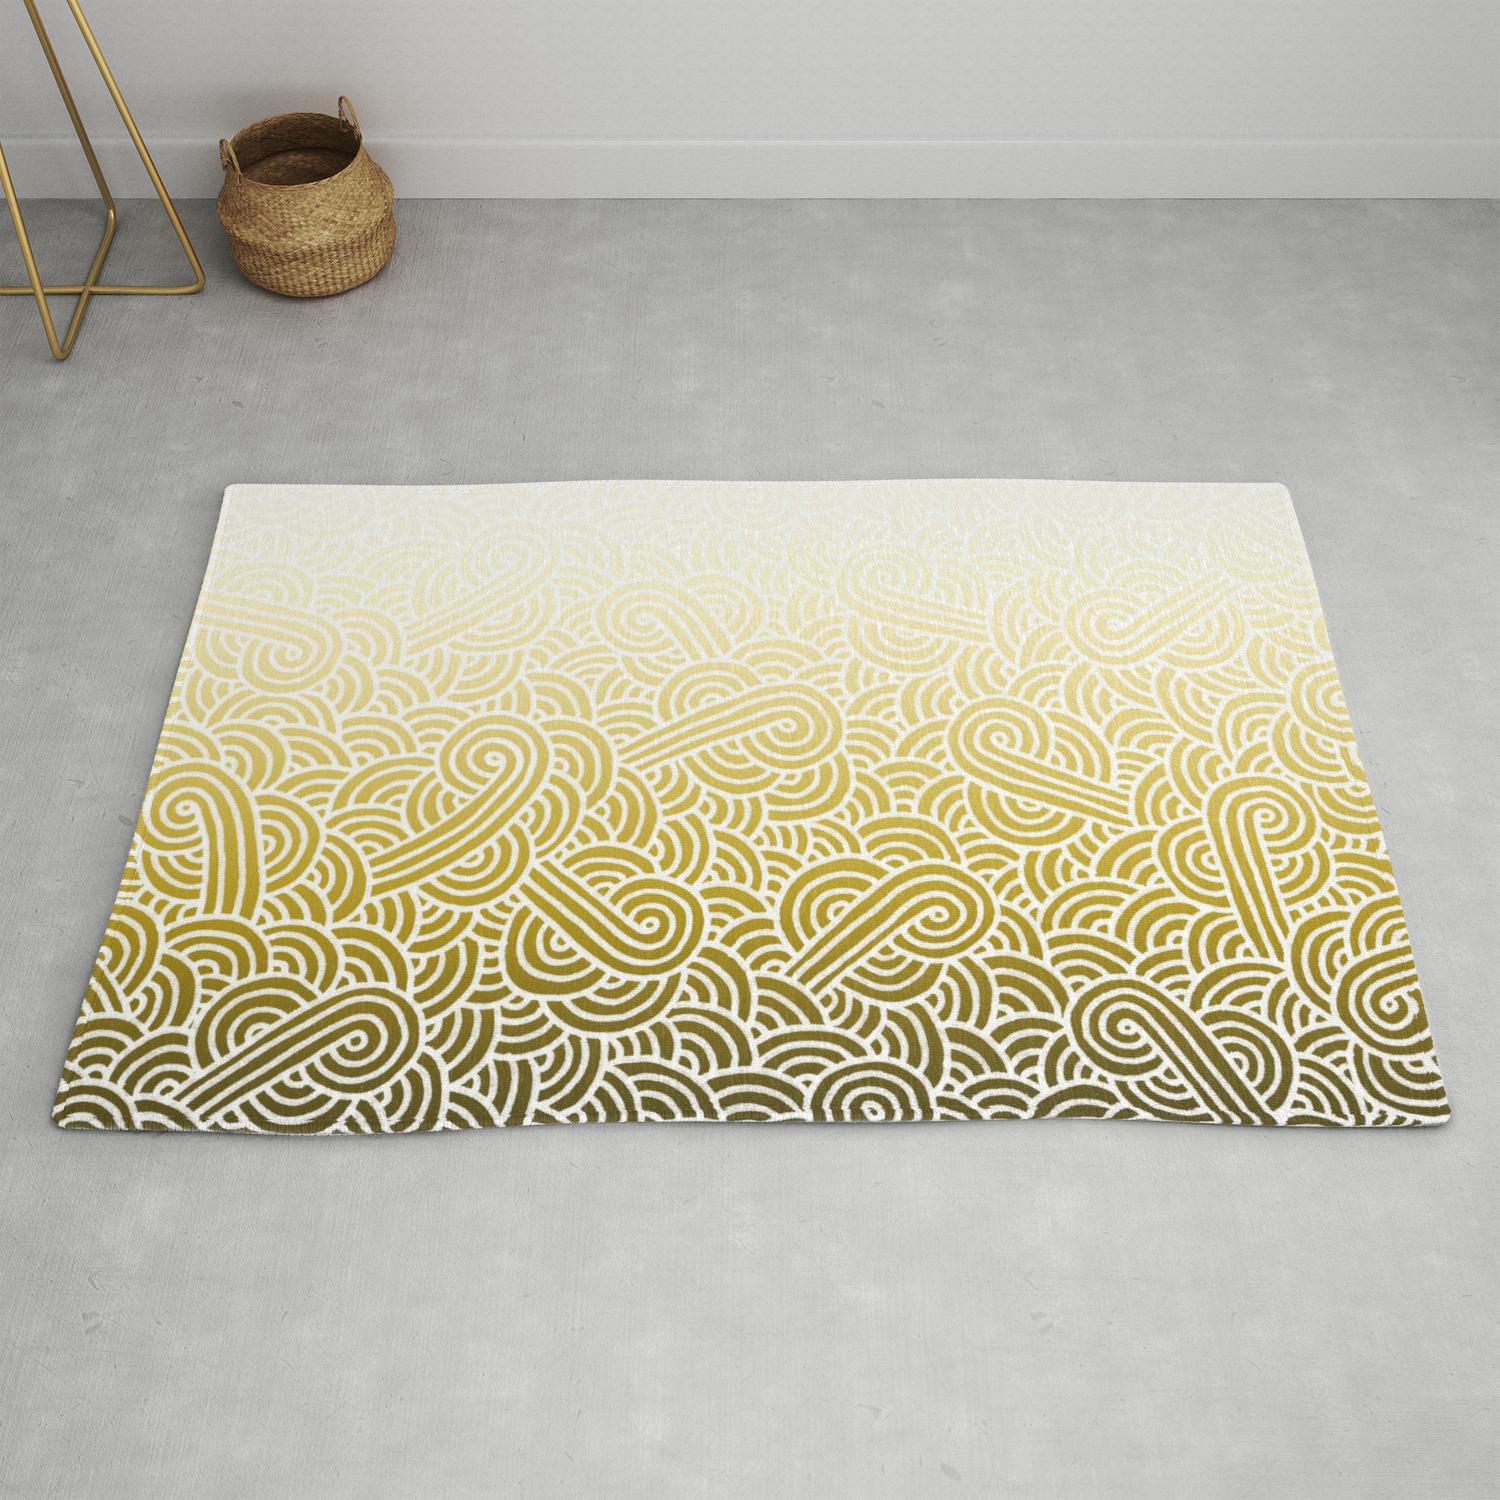 Faded yellow and white swirls doodles